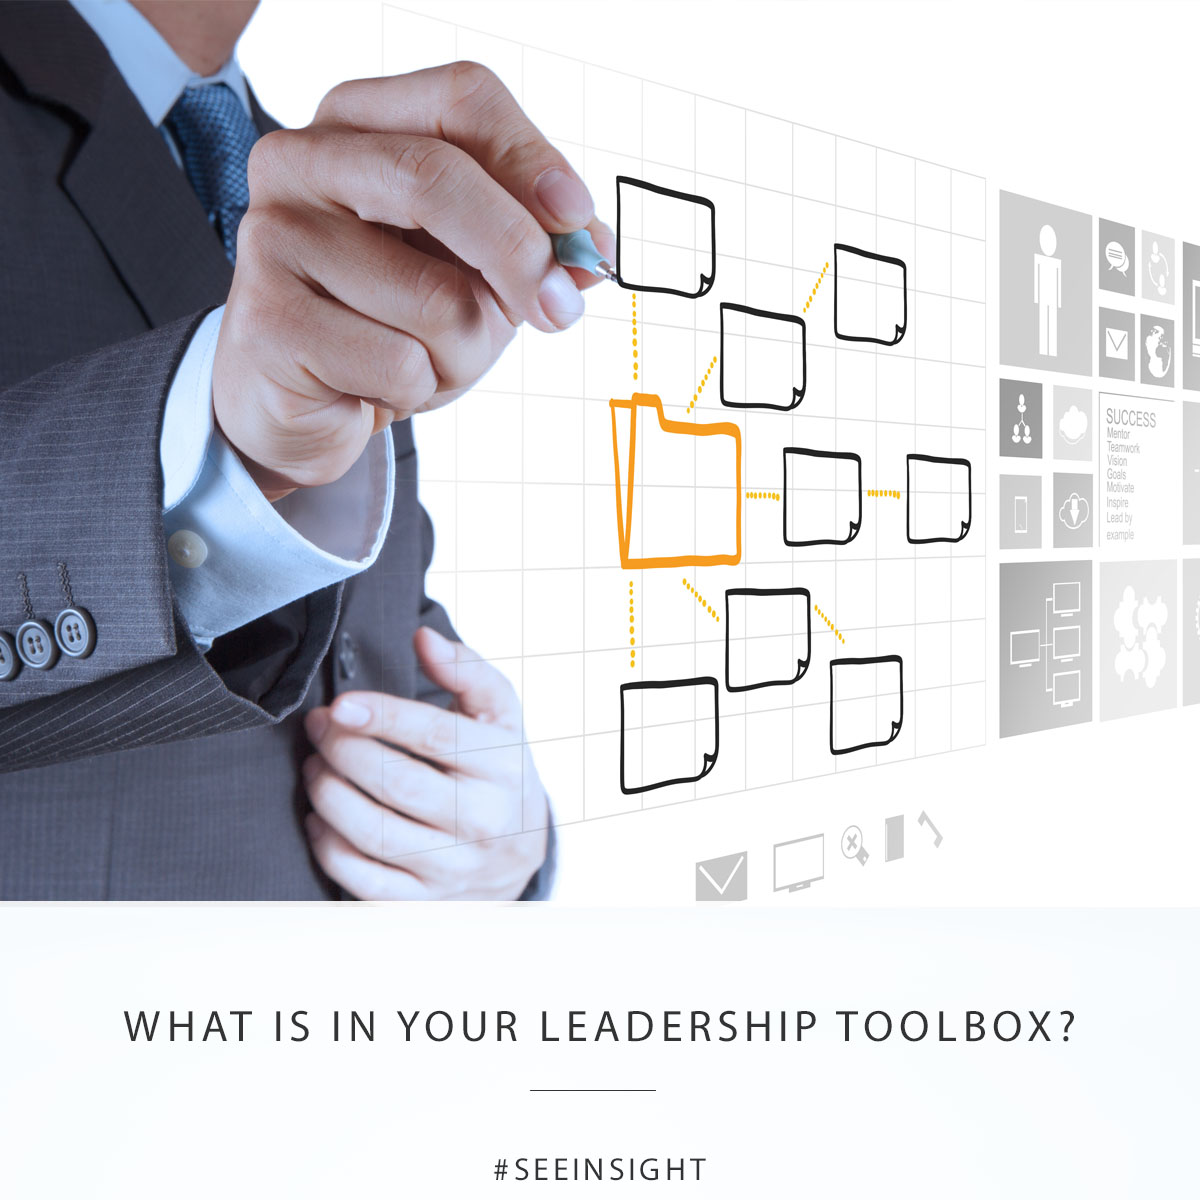 What's in your leadership toolbox?